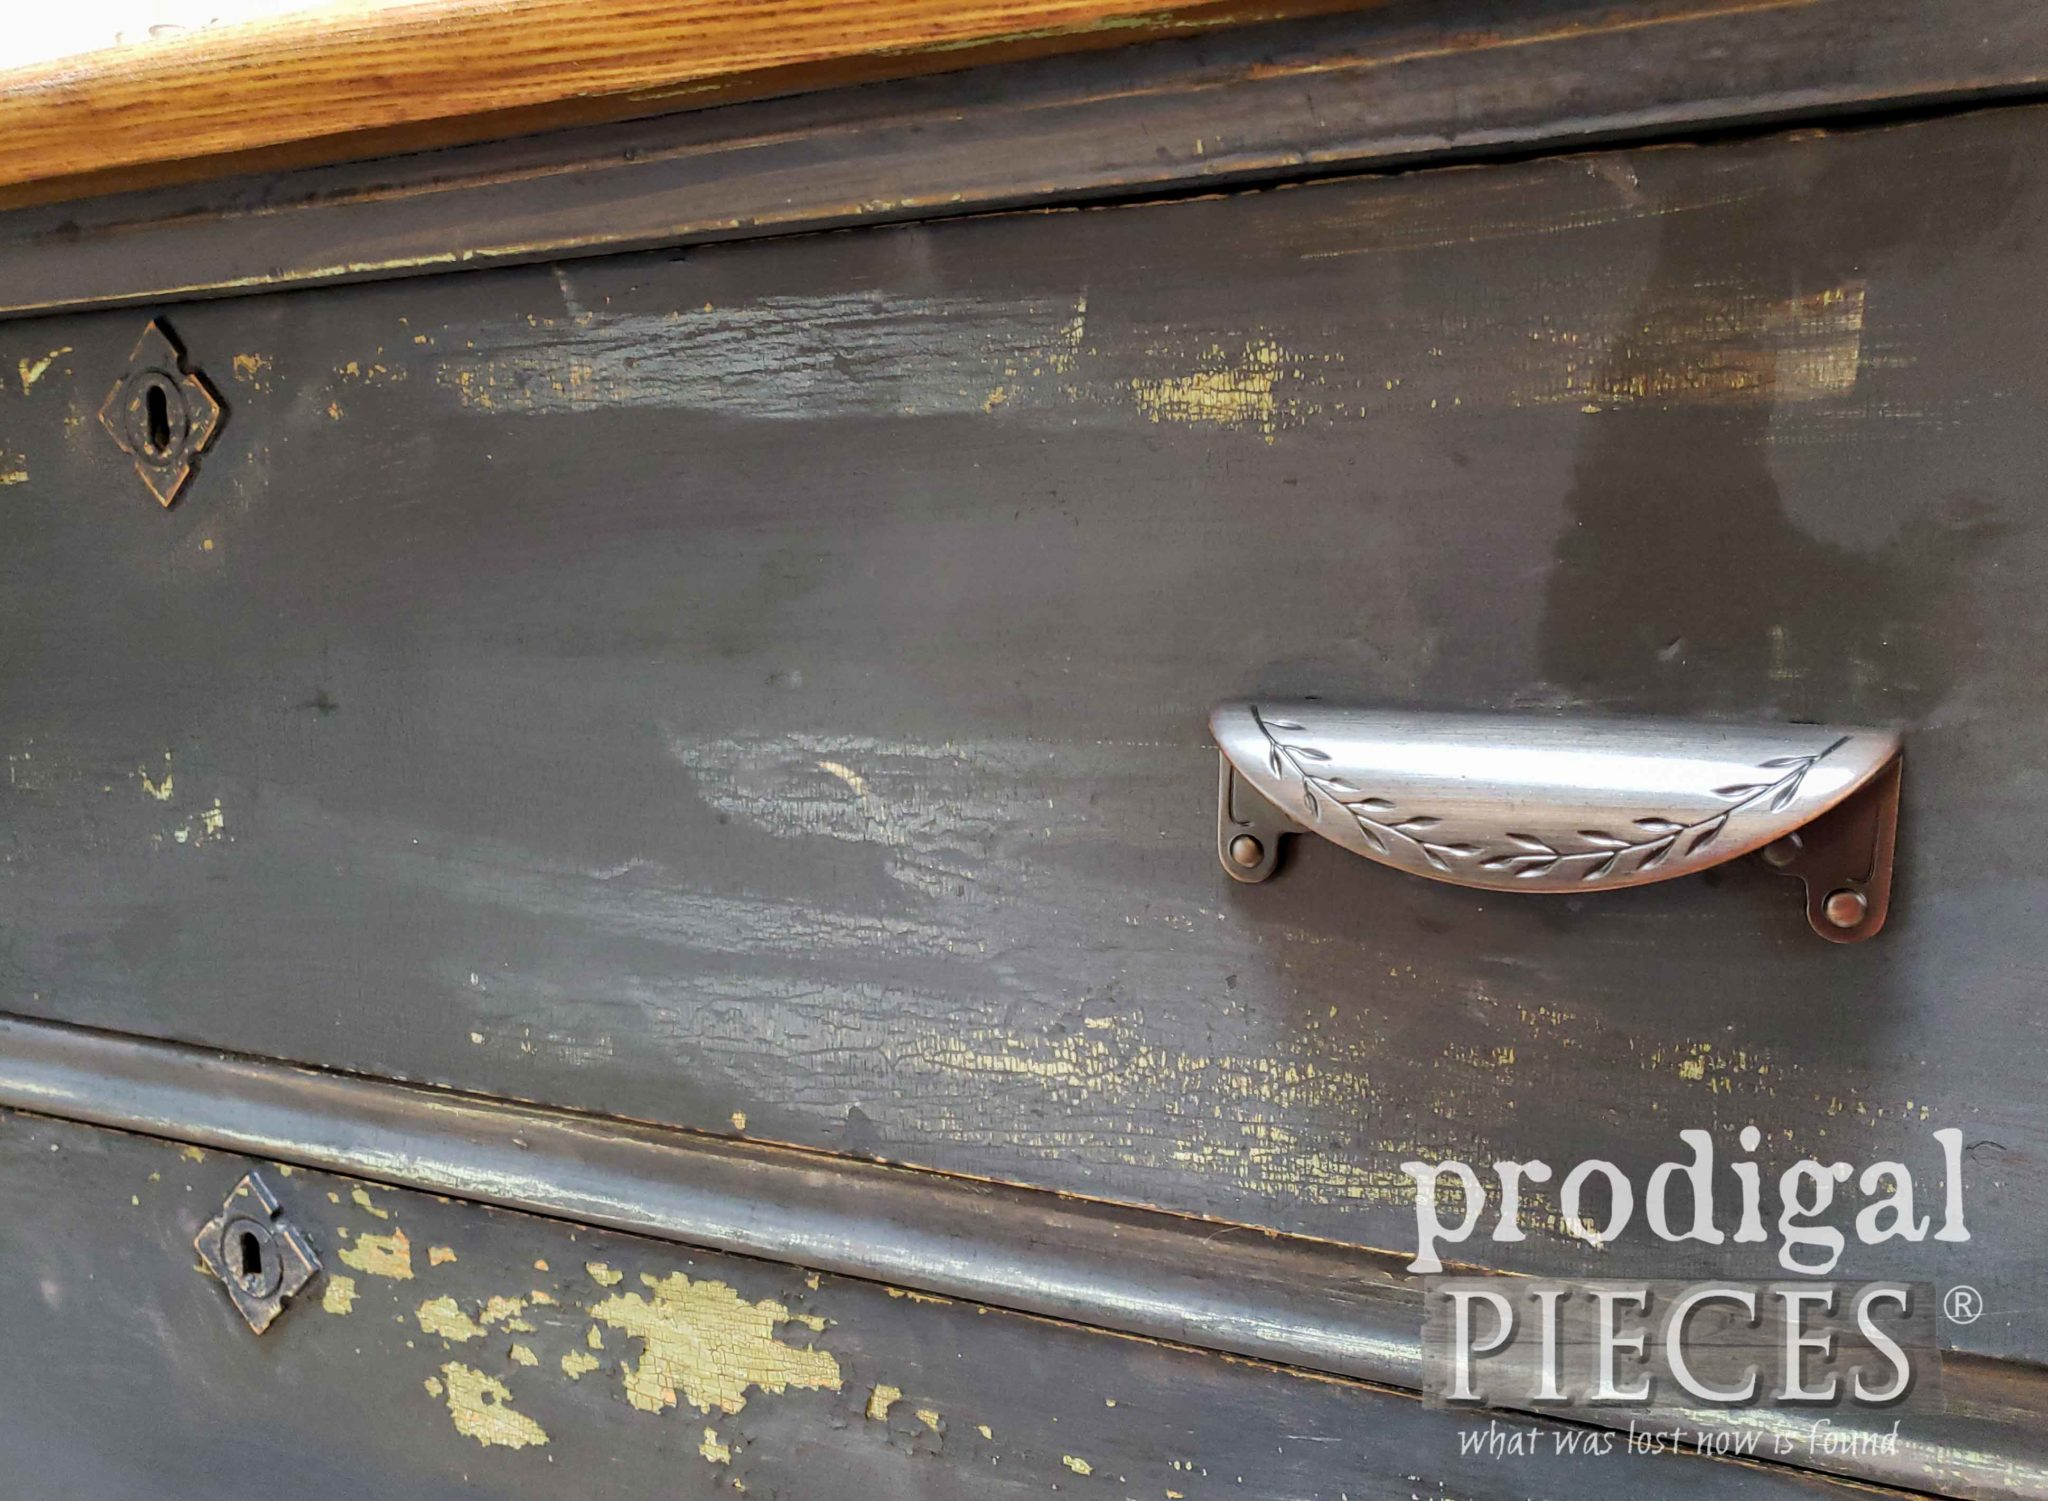 Oil Rubbed Bronze Drawer Hardware for Farmhouse Chest of Drawers by Larissa of Prodigal Pieces | prodigalpieces.com #prodigalpieces #diy #furniture #homedecor #farmhouse #home